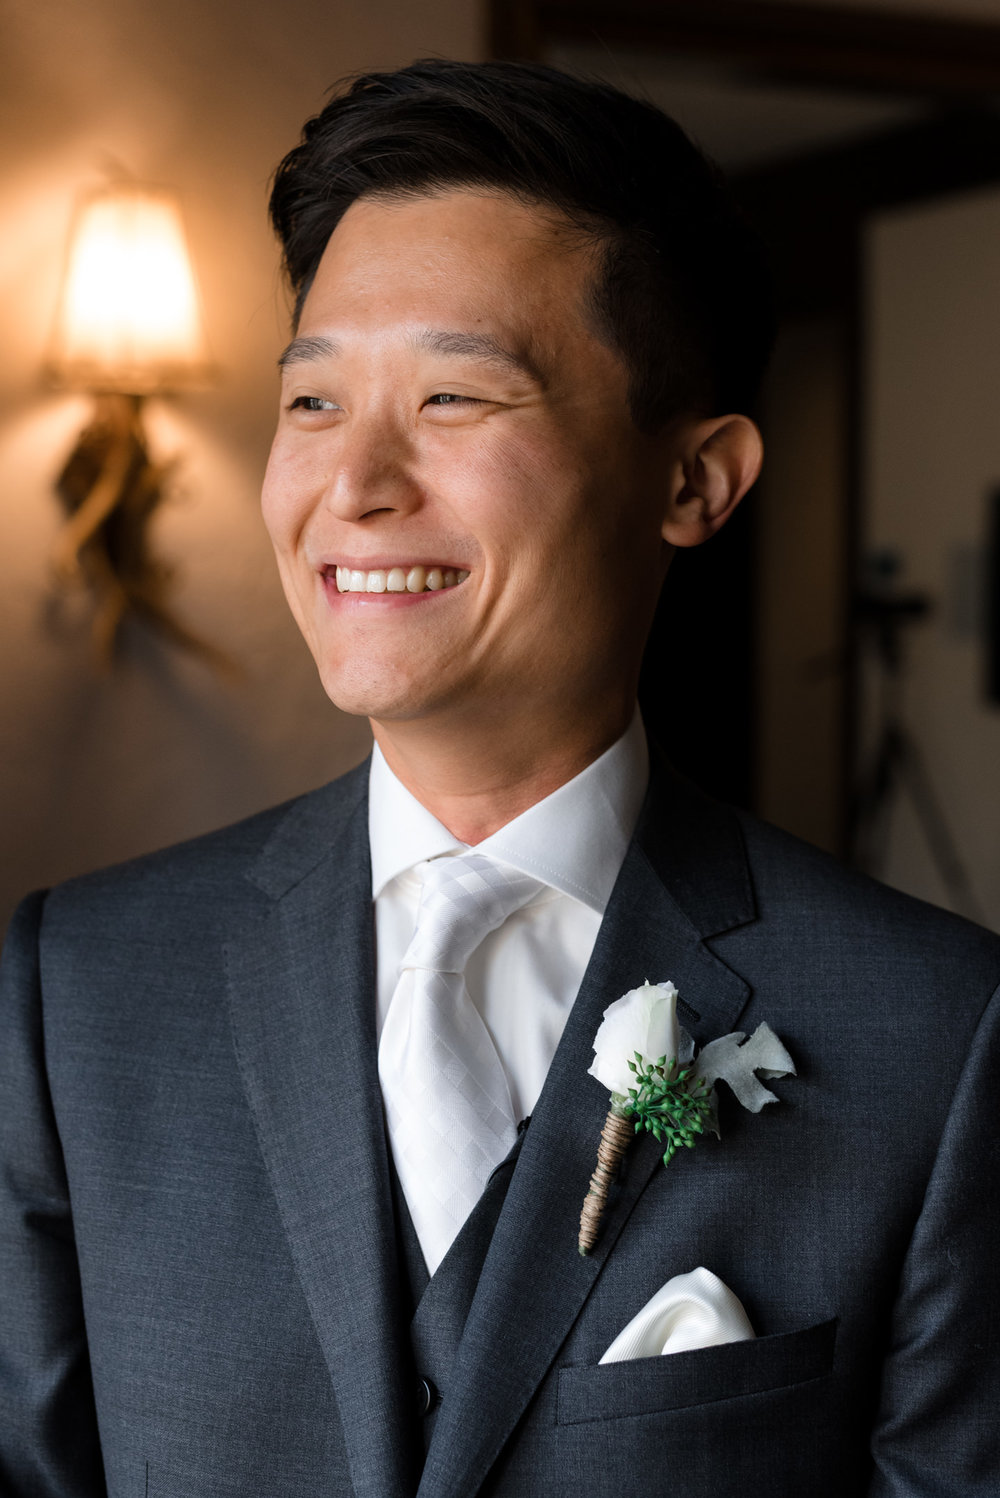 Asian Groom Happy Smiling Wedding Portrait